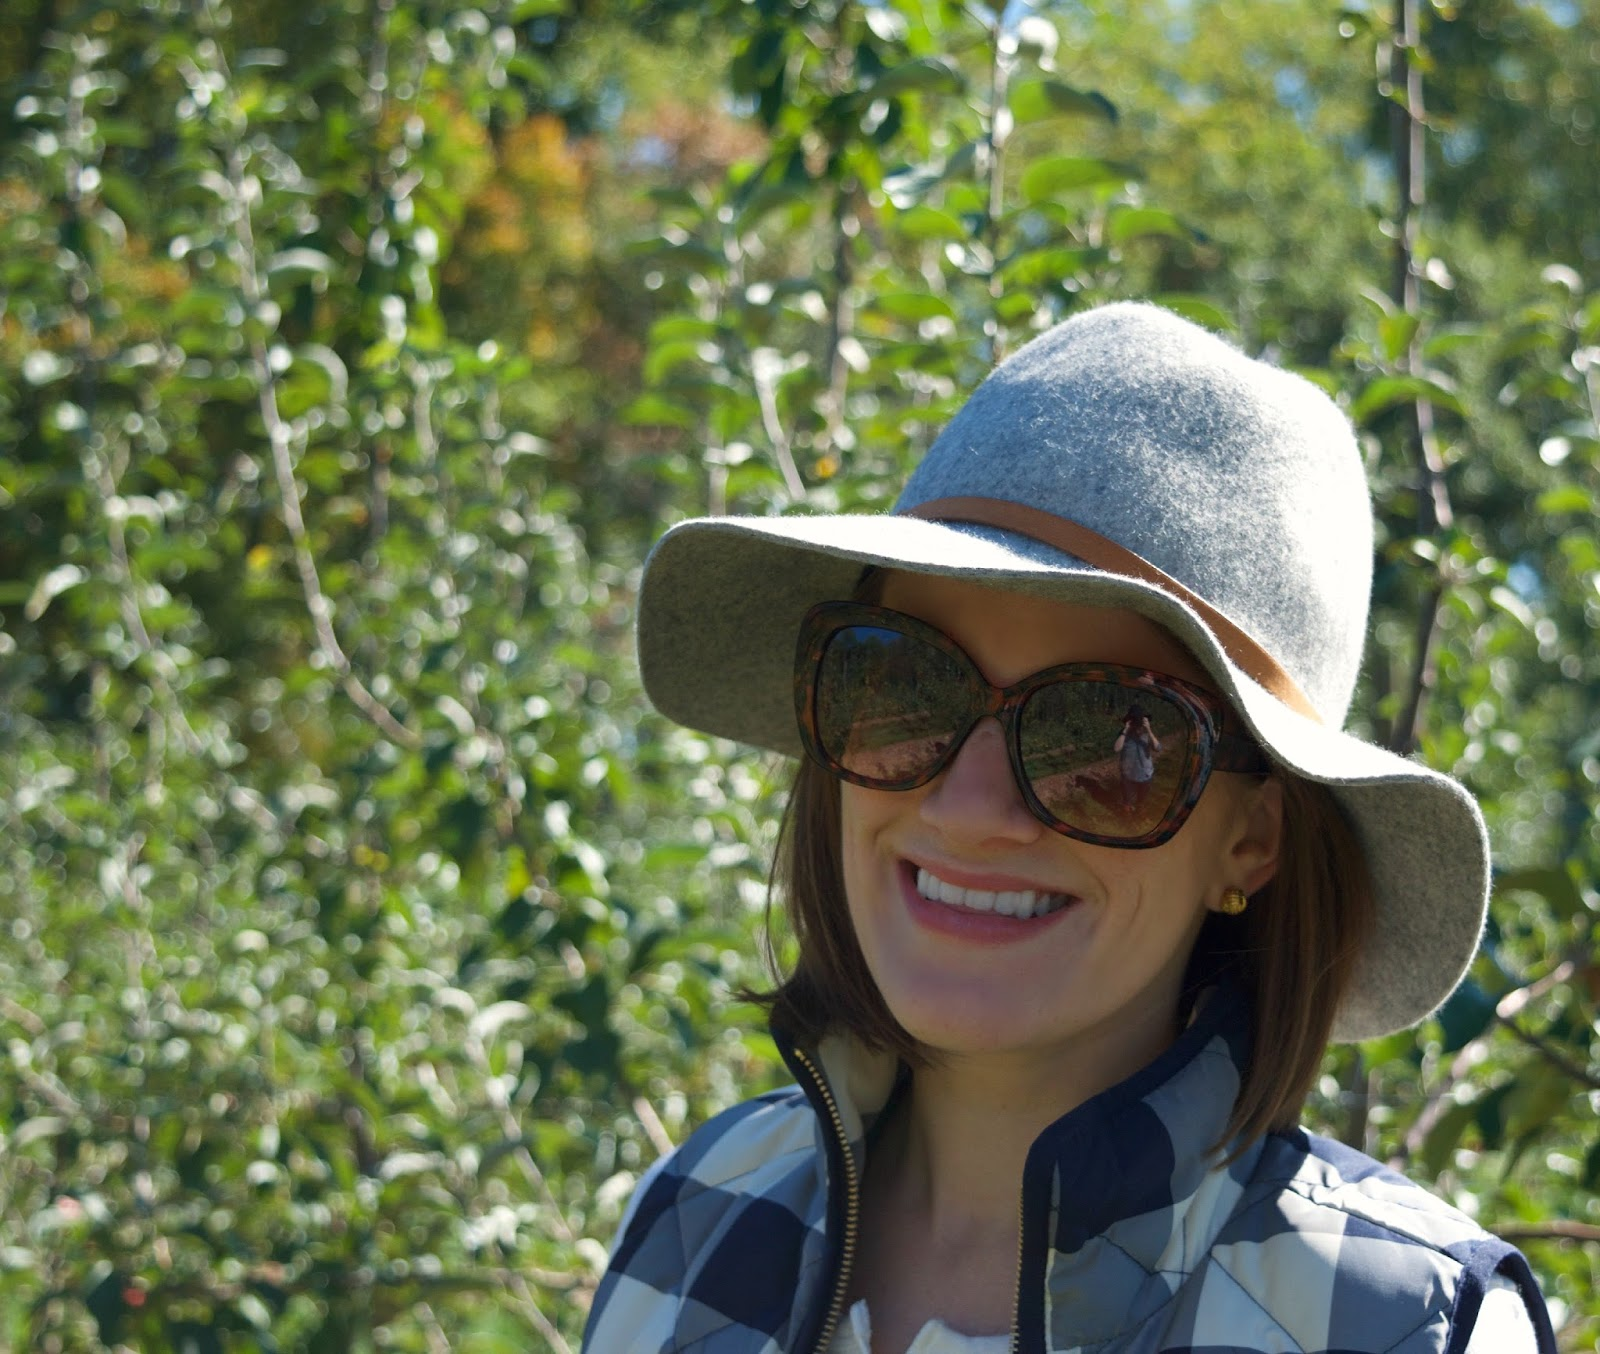 wool hat - fall hat - apple picking outfit